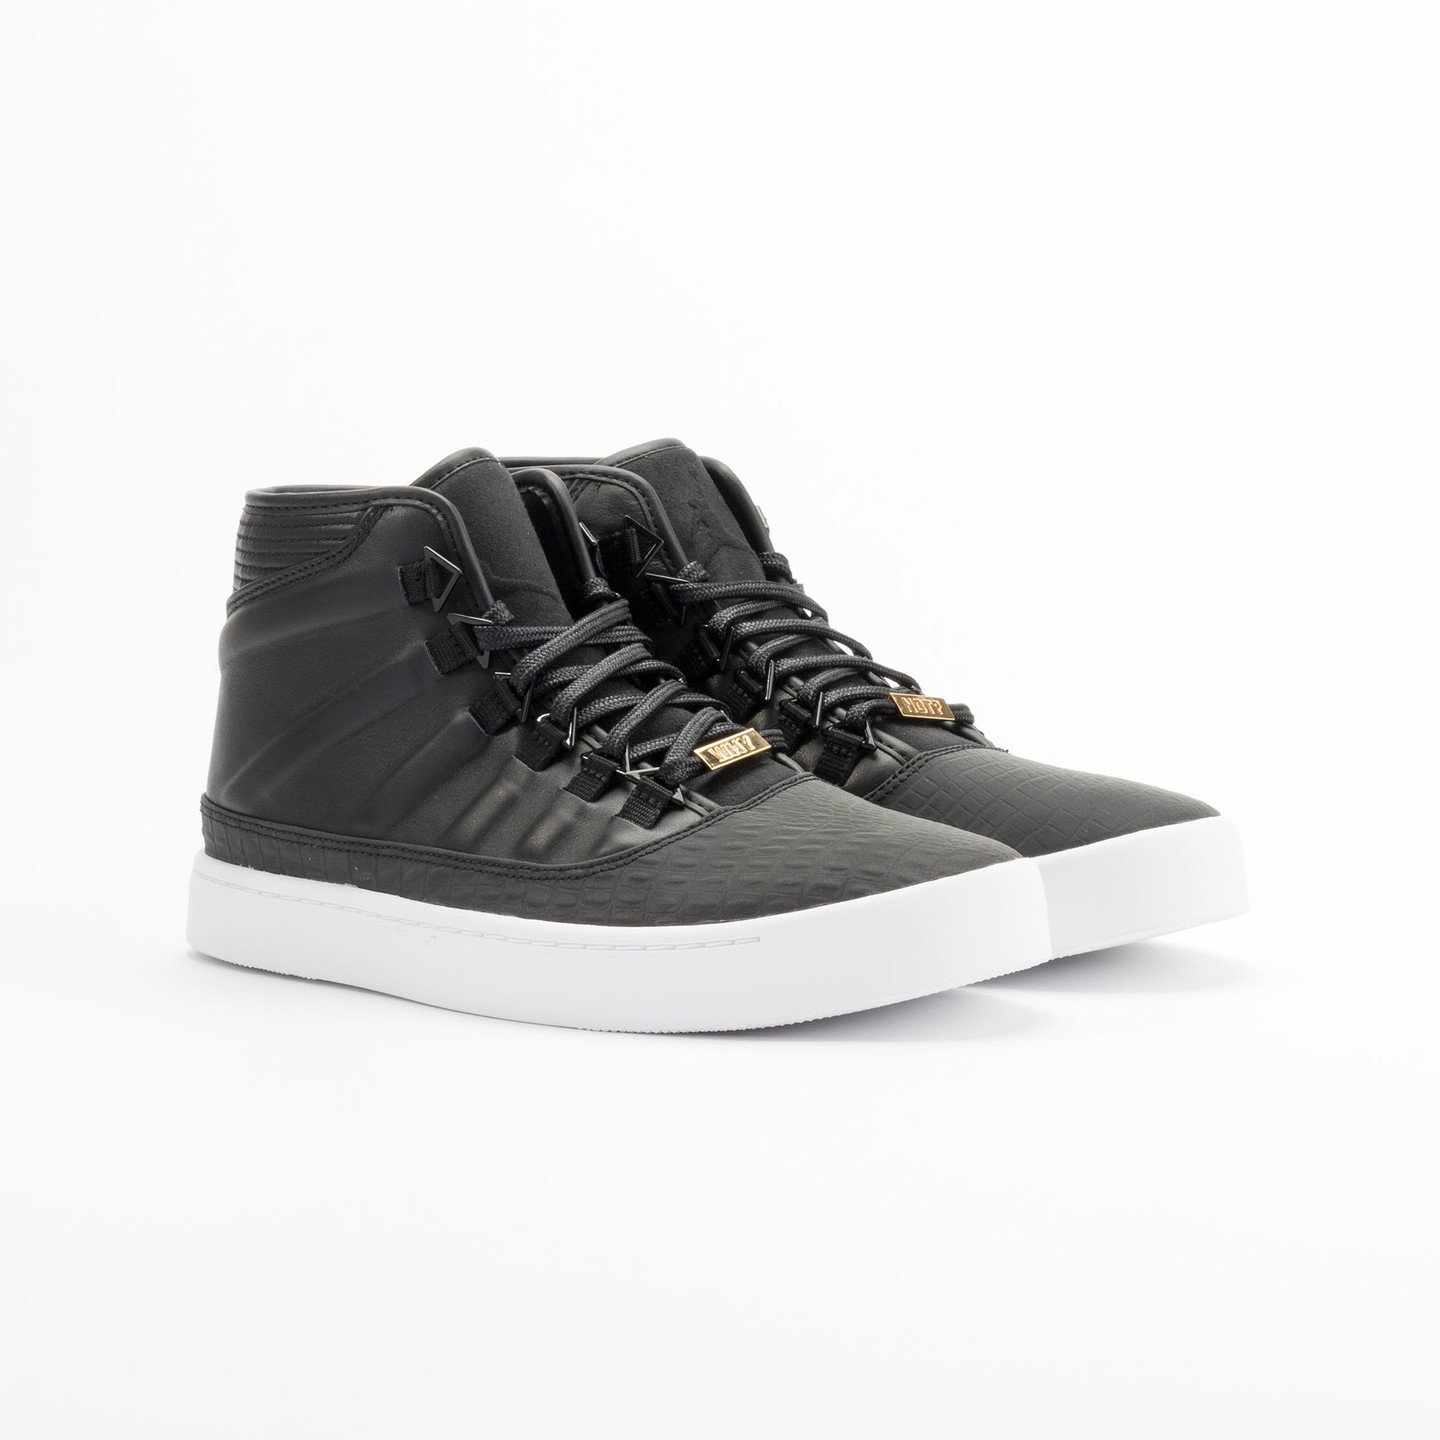 Jordan Westbrook 0 Black Metallic / Gold - White 768934-001-47.5